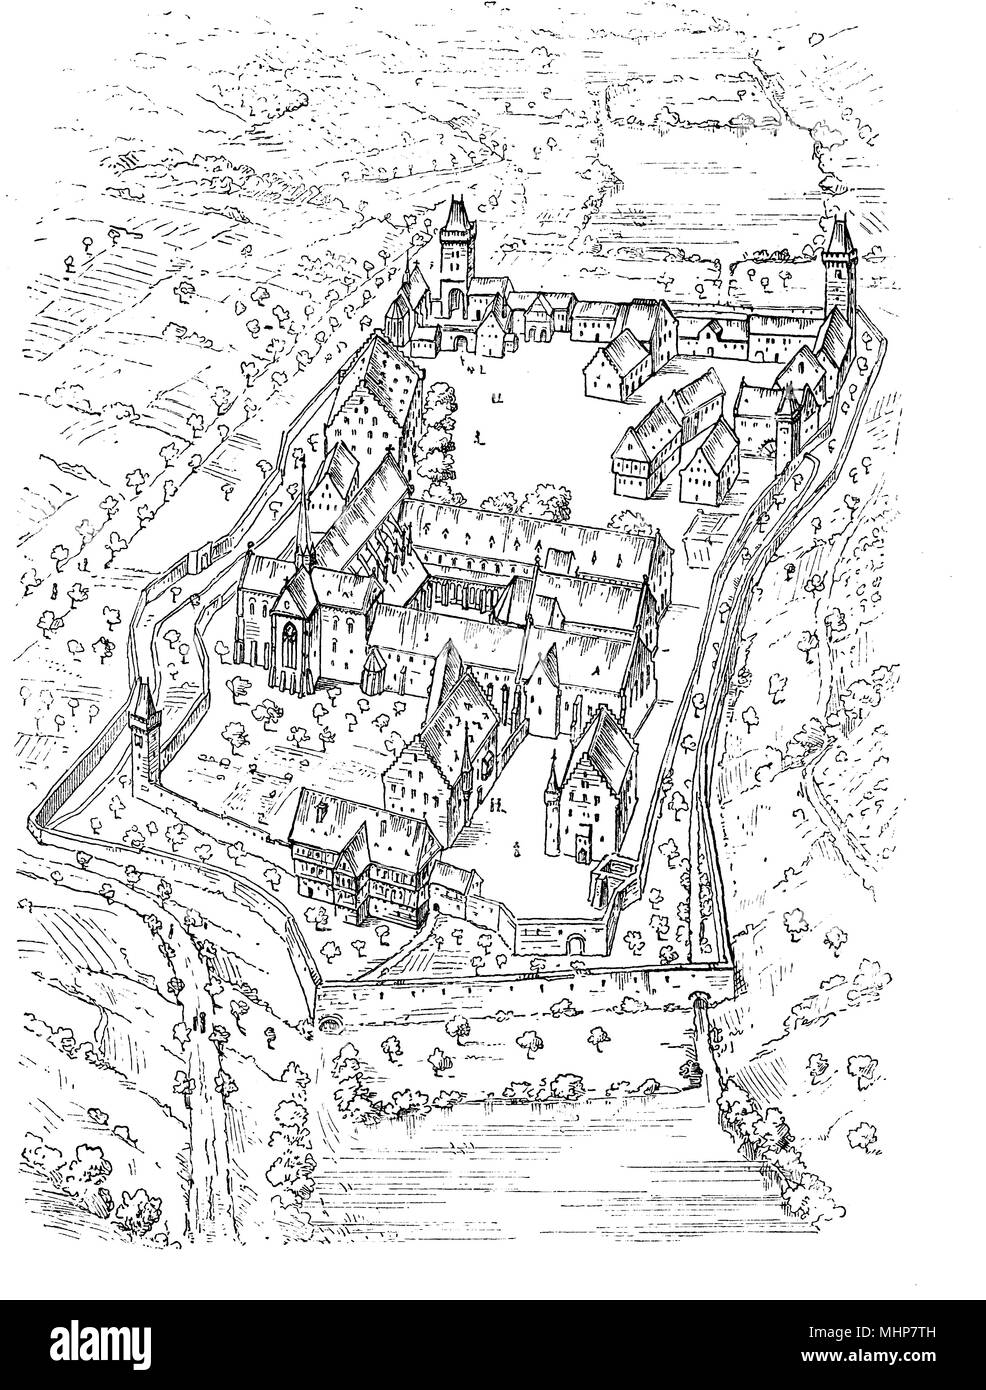 Maulbronn Monastery plan,  Roman Catholic Cistercian Abbey in Germany founded in year 1147 - Stock Image